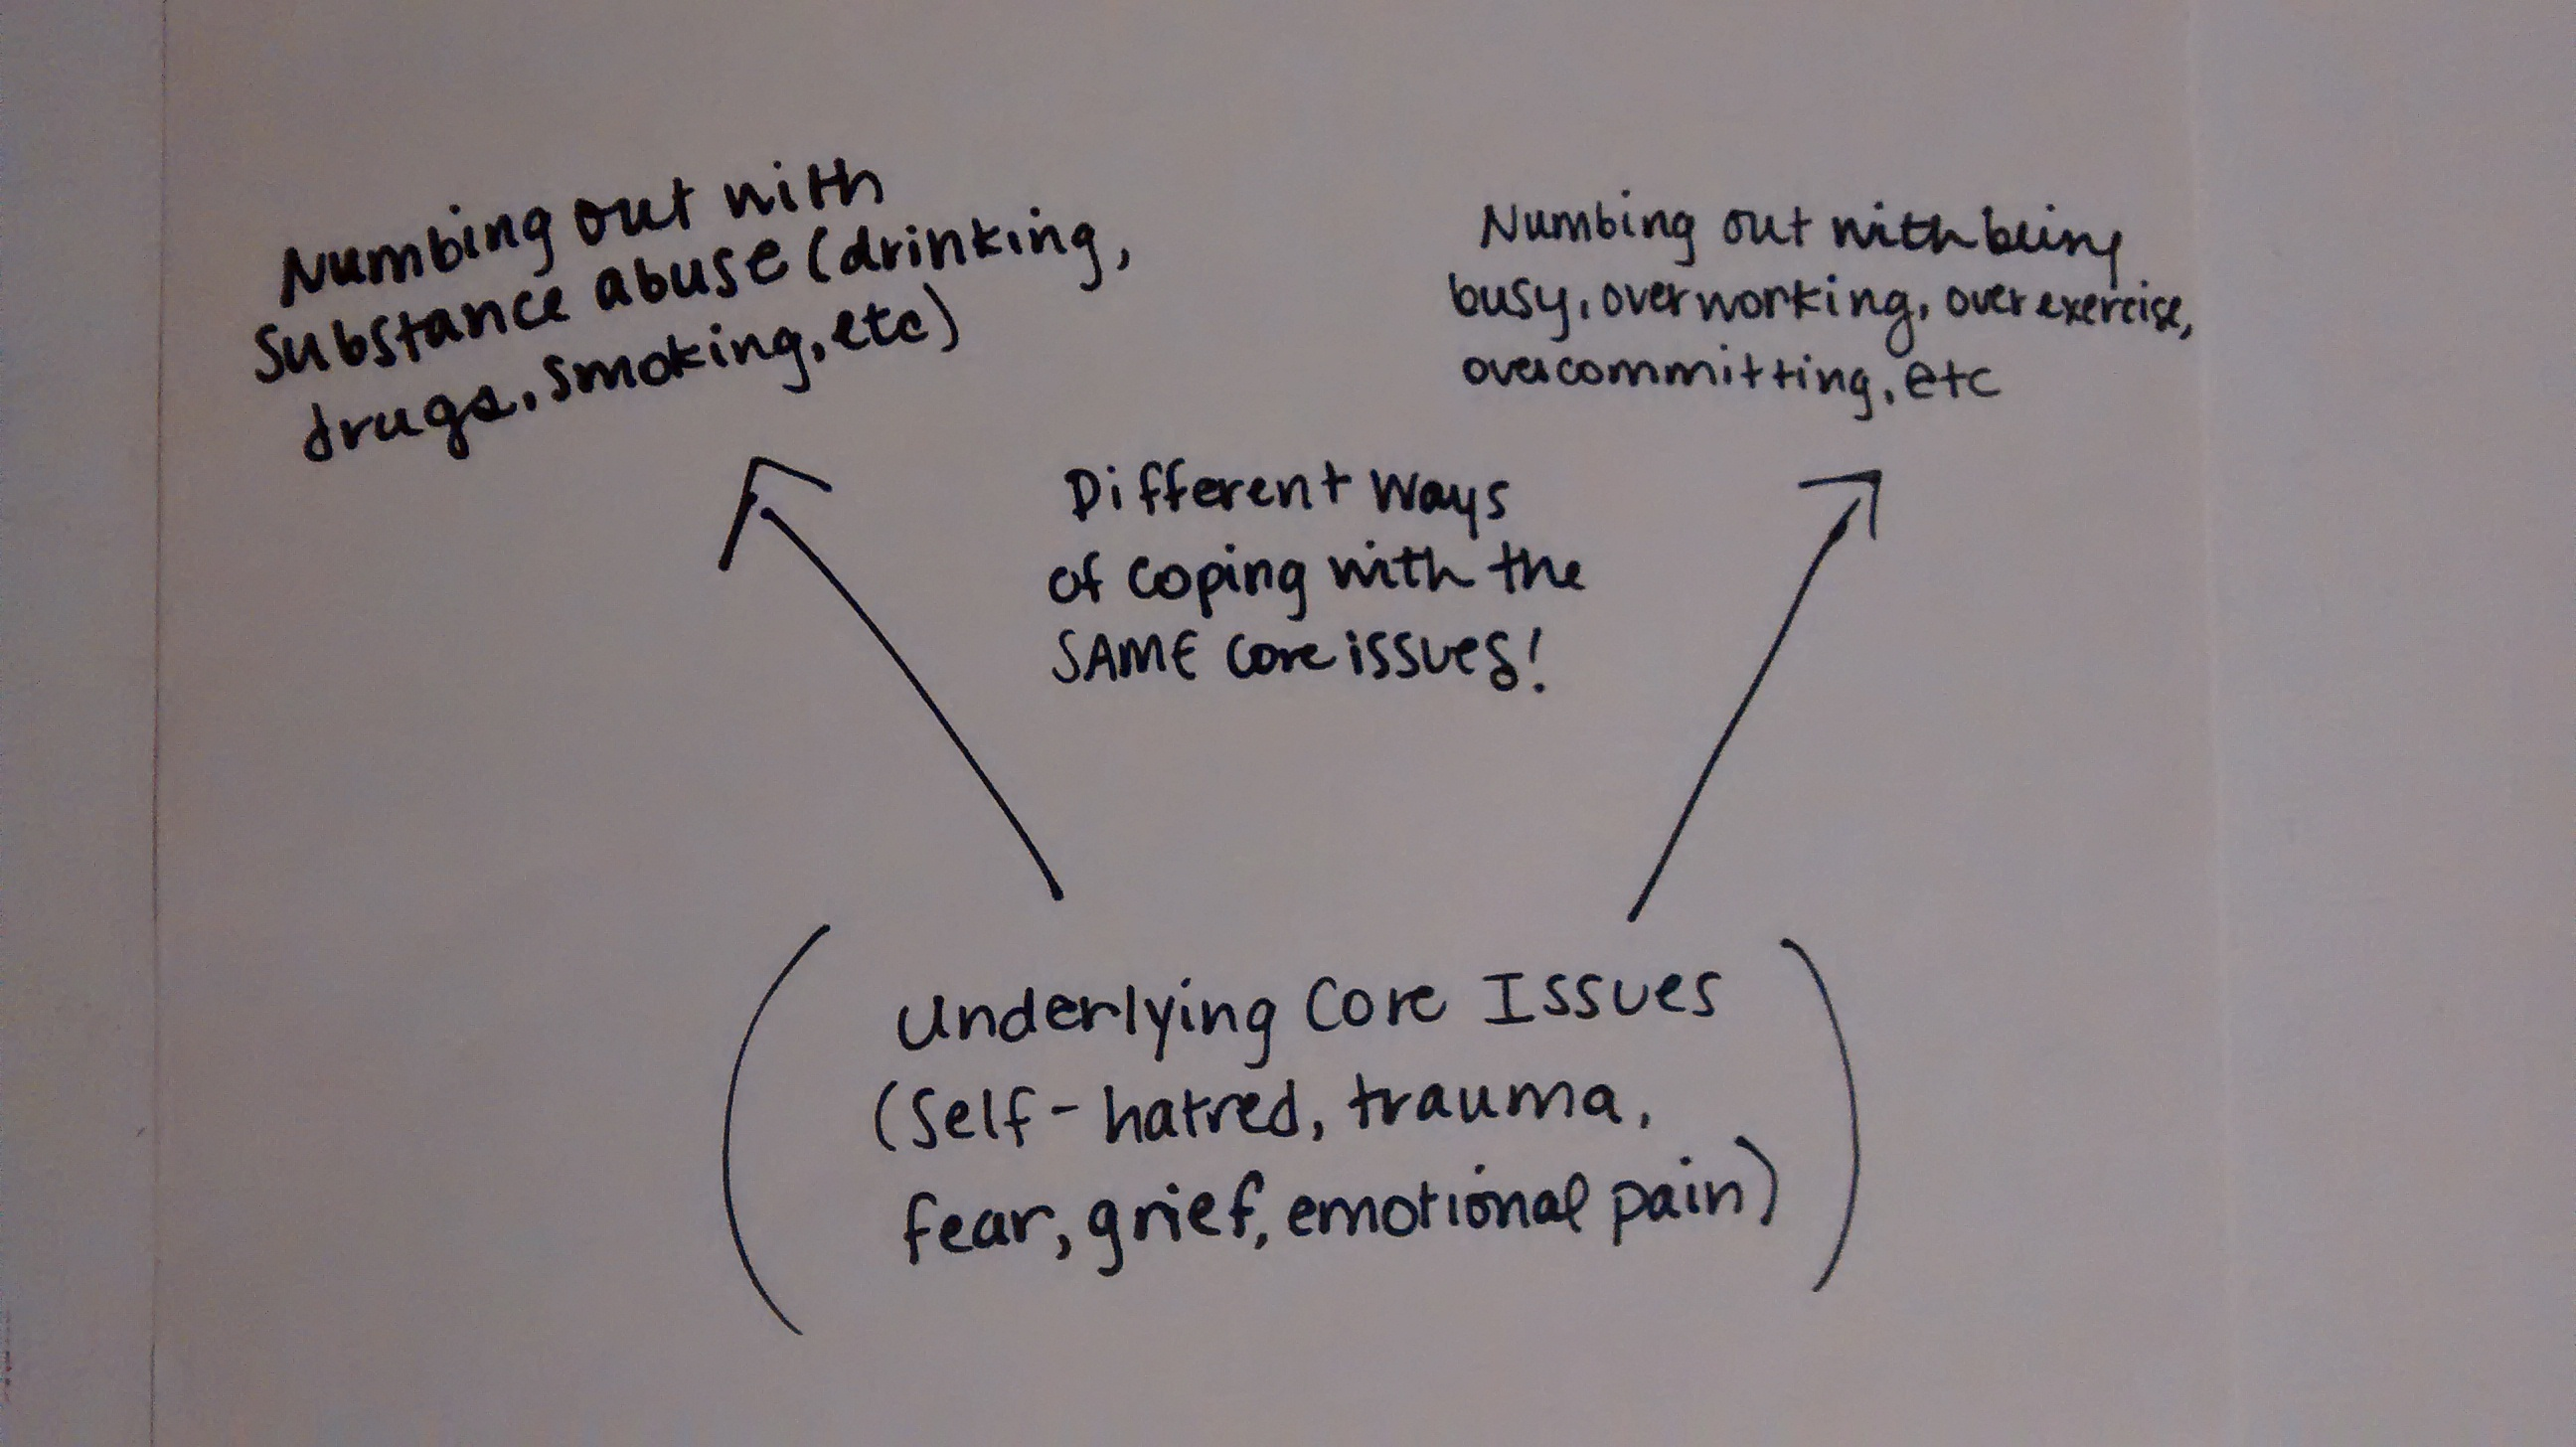 Underlying-Core-Issues-Addiction